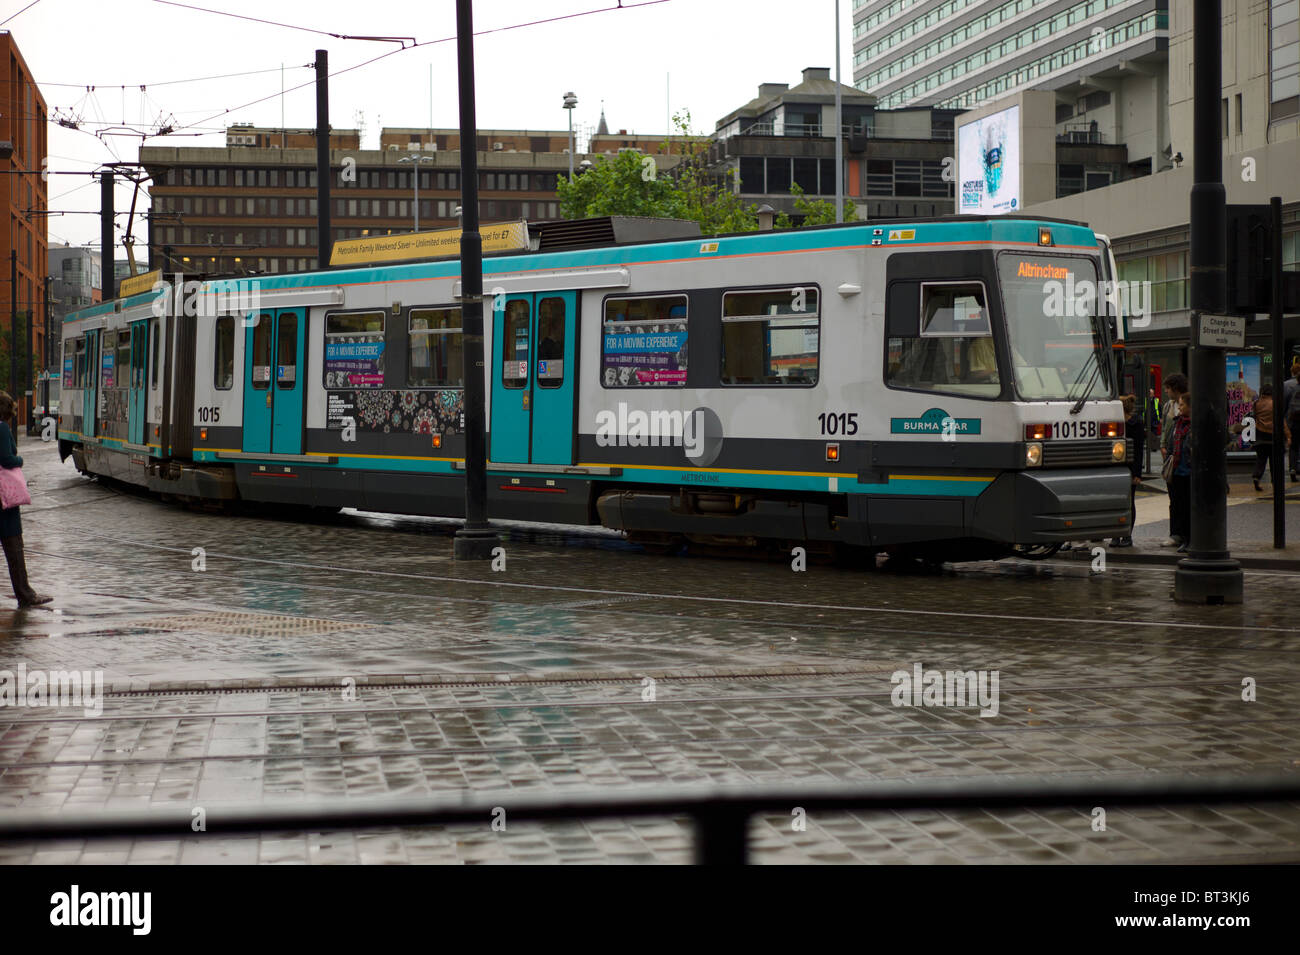 Tram terminal in  Piccadilly Manchester - Stock Image